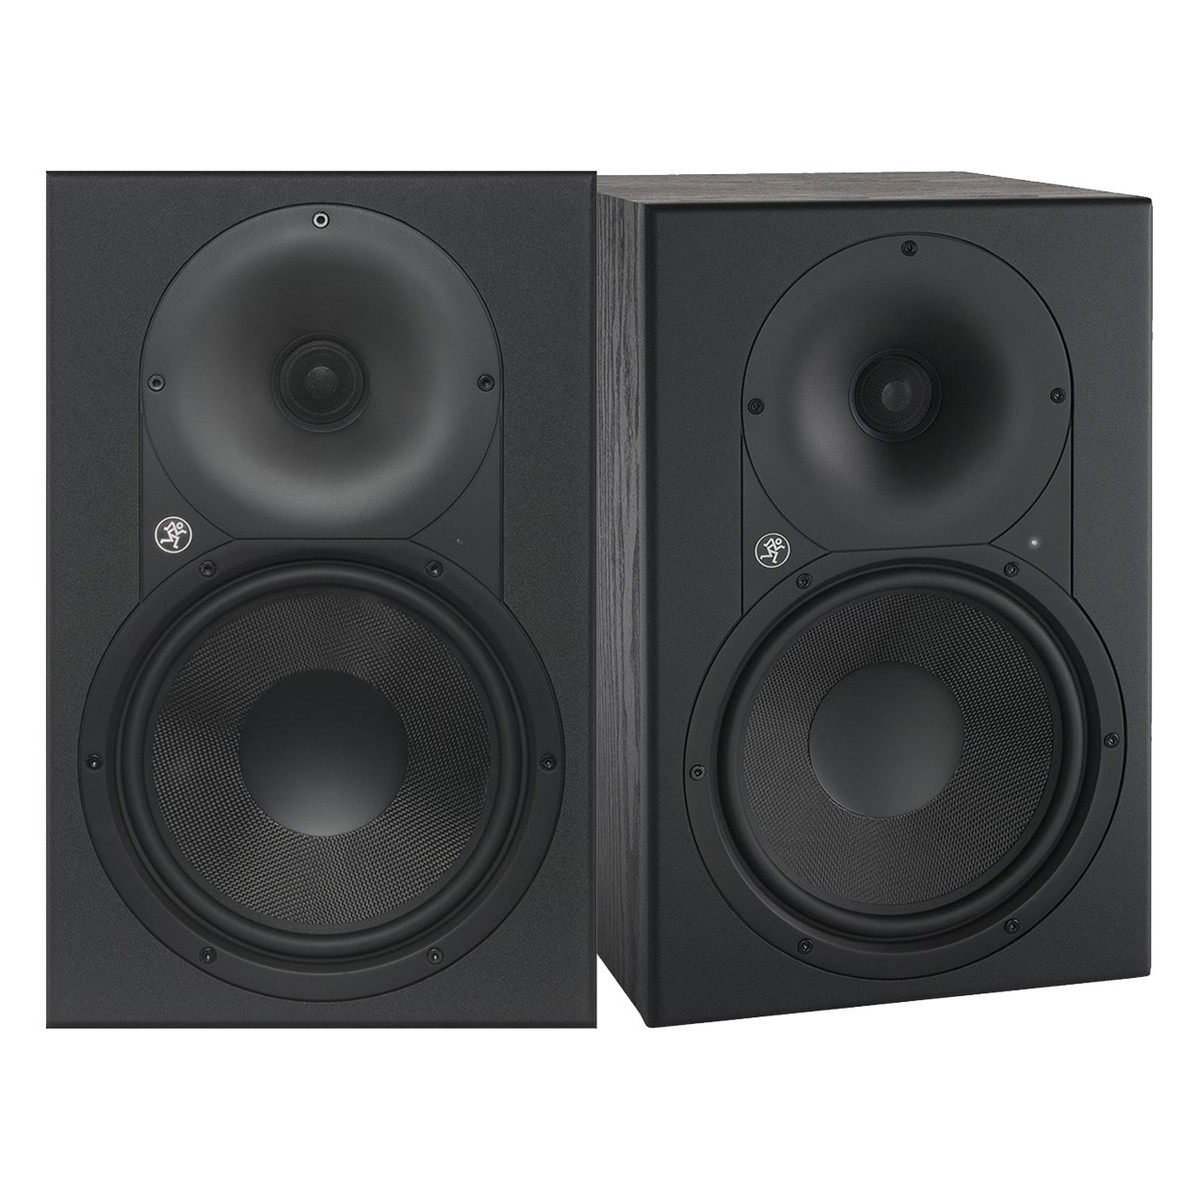 mackie xr824 active studio monitor pair at gear4music. Black Bedroom Furniture Sets. Home Design Ideas